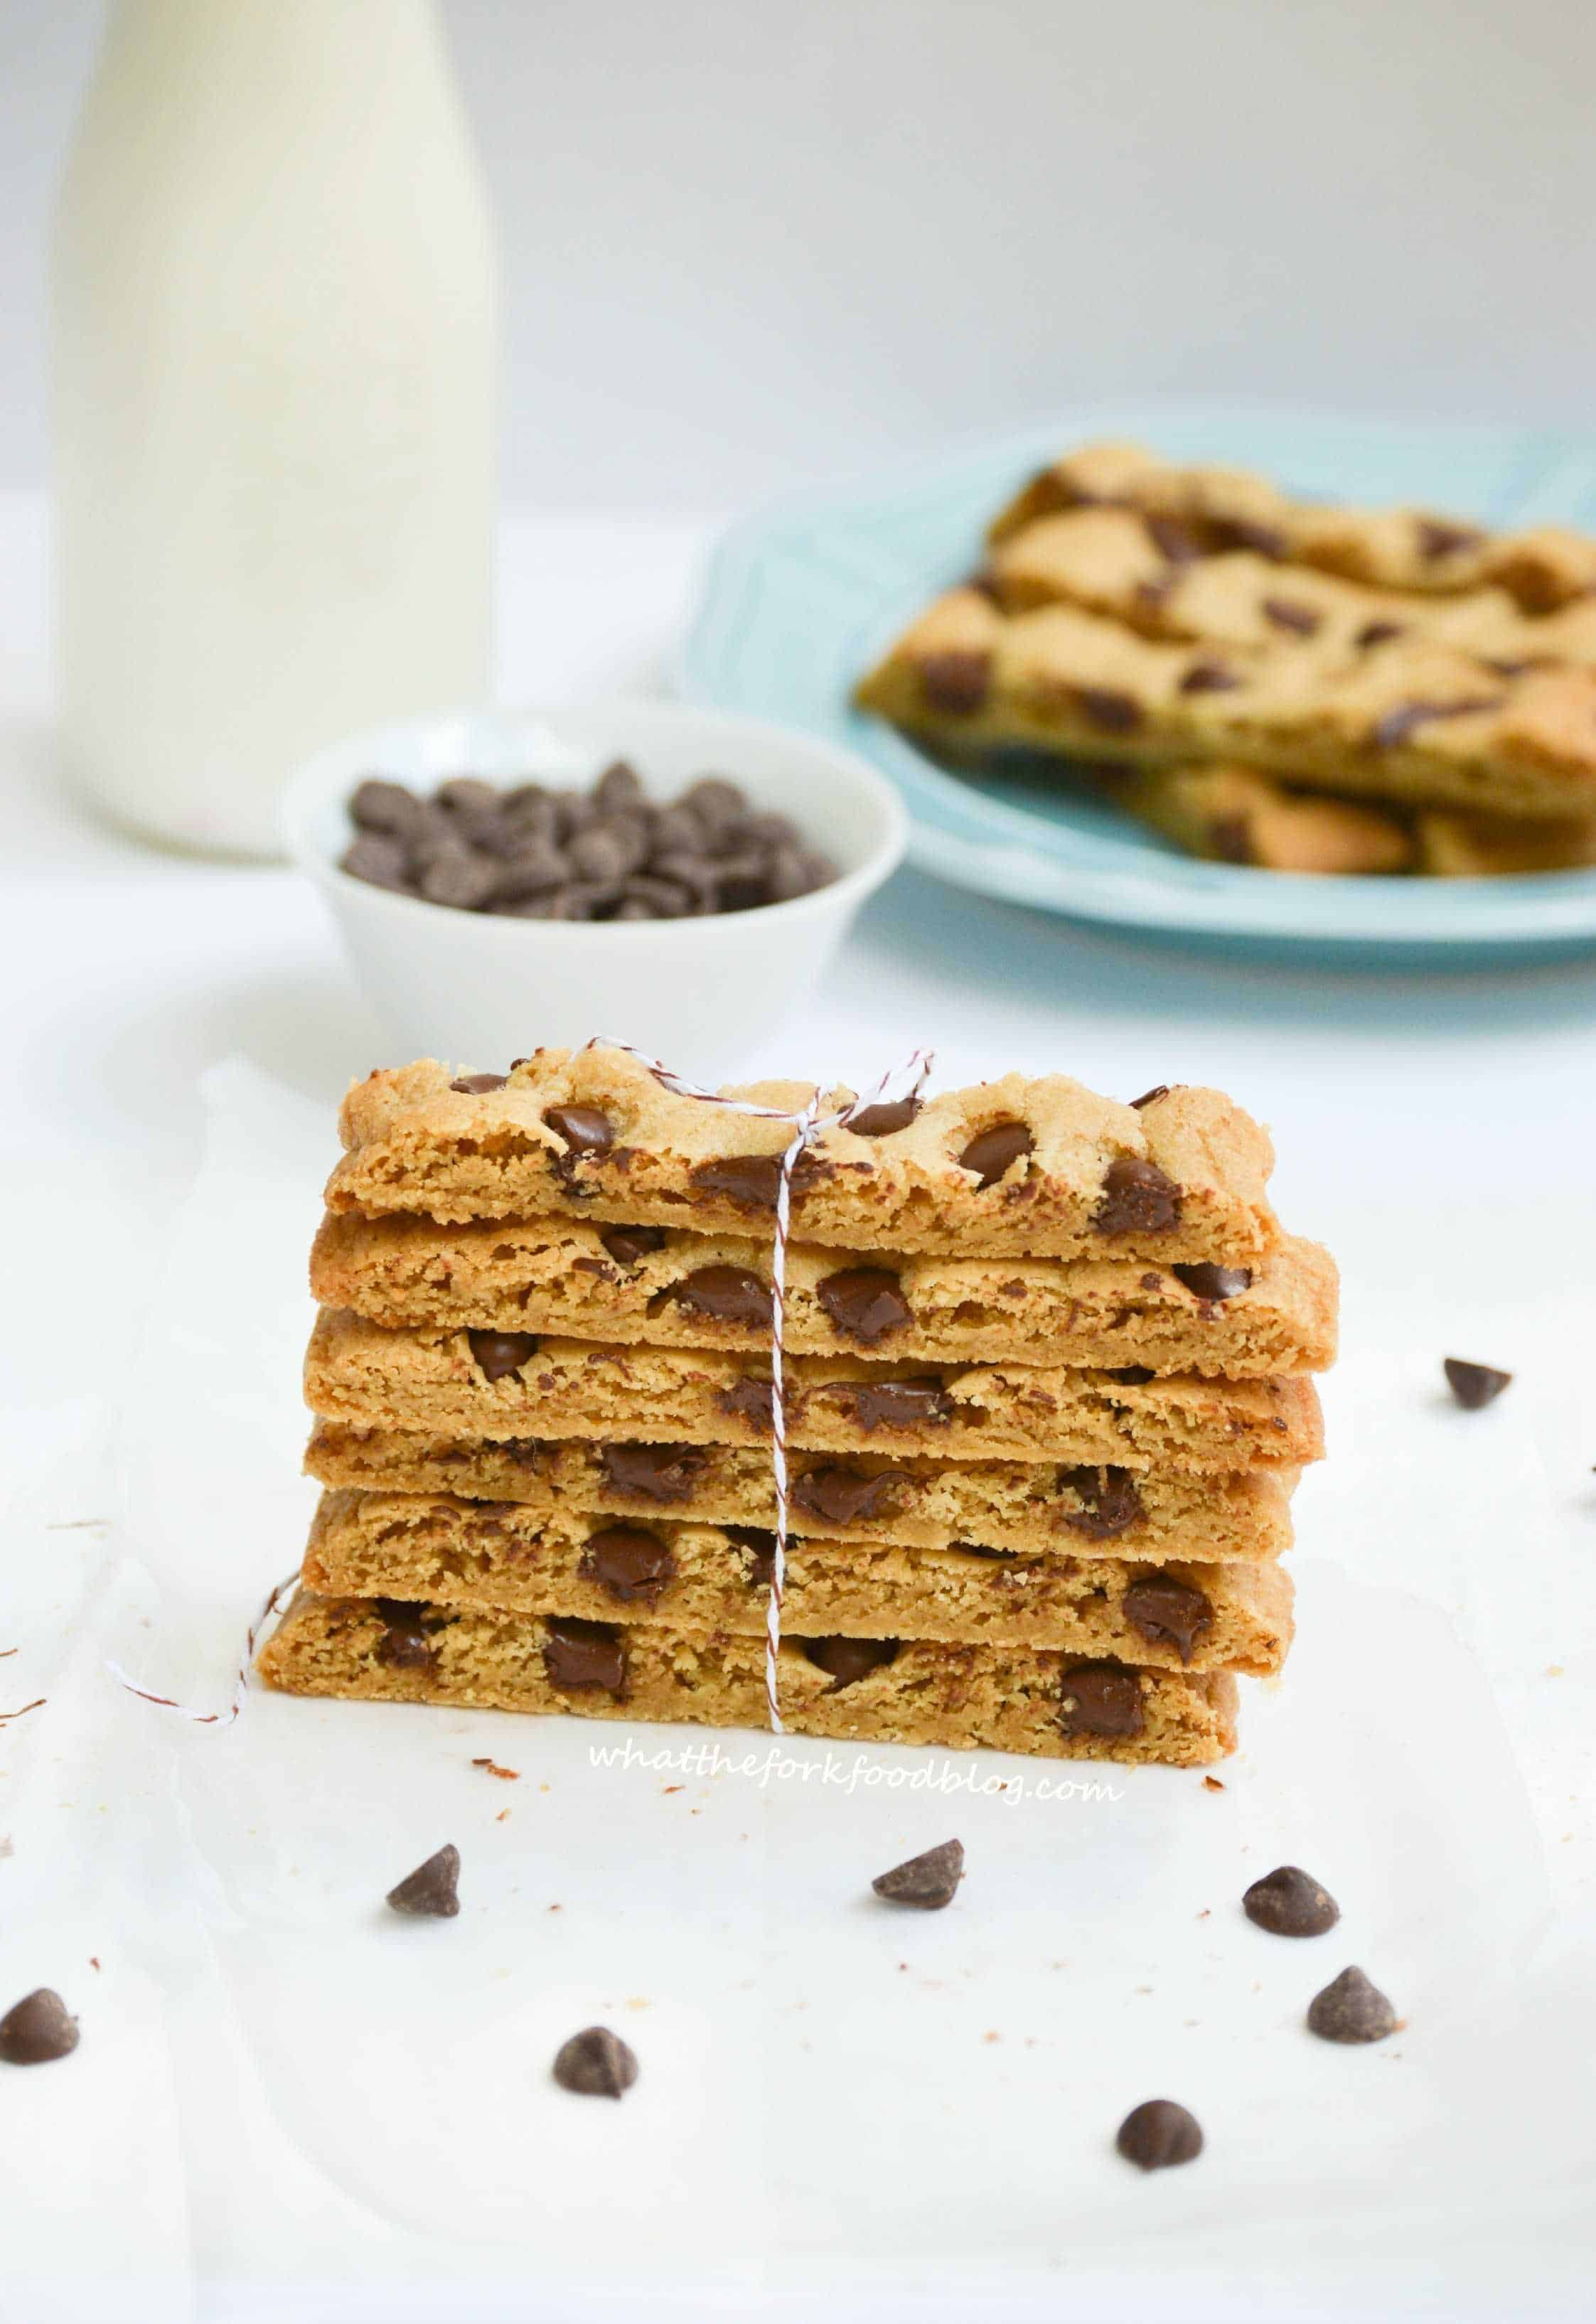 Chocolate Chip Cookie Sticks from What The Fork Food Blog